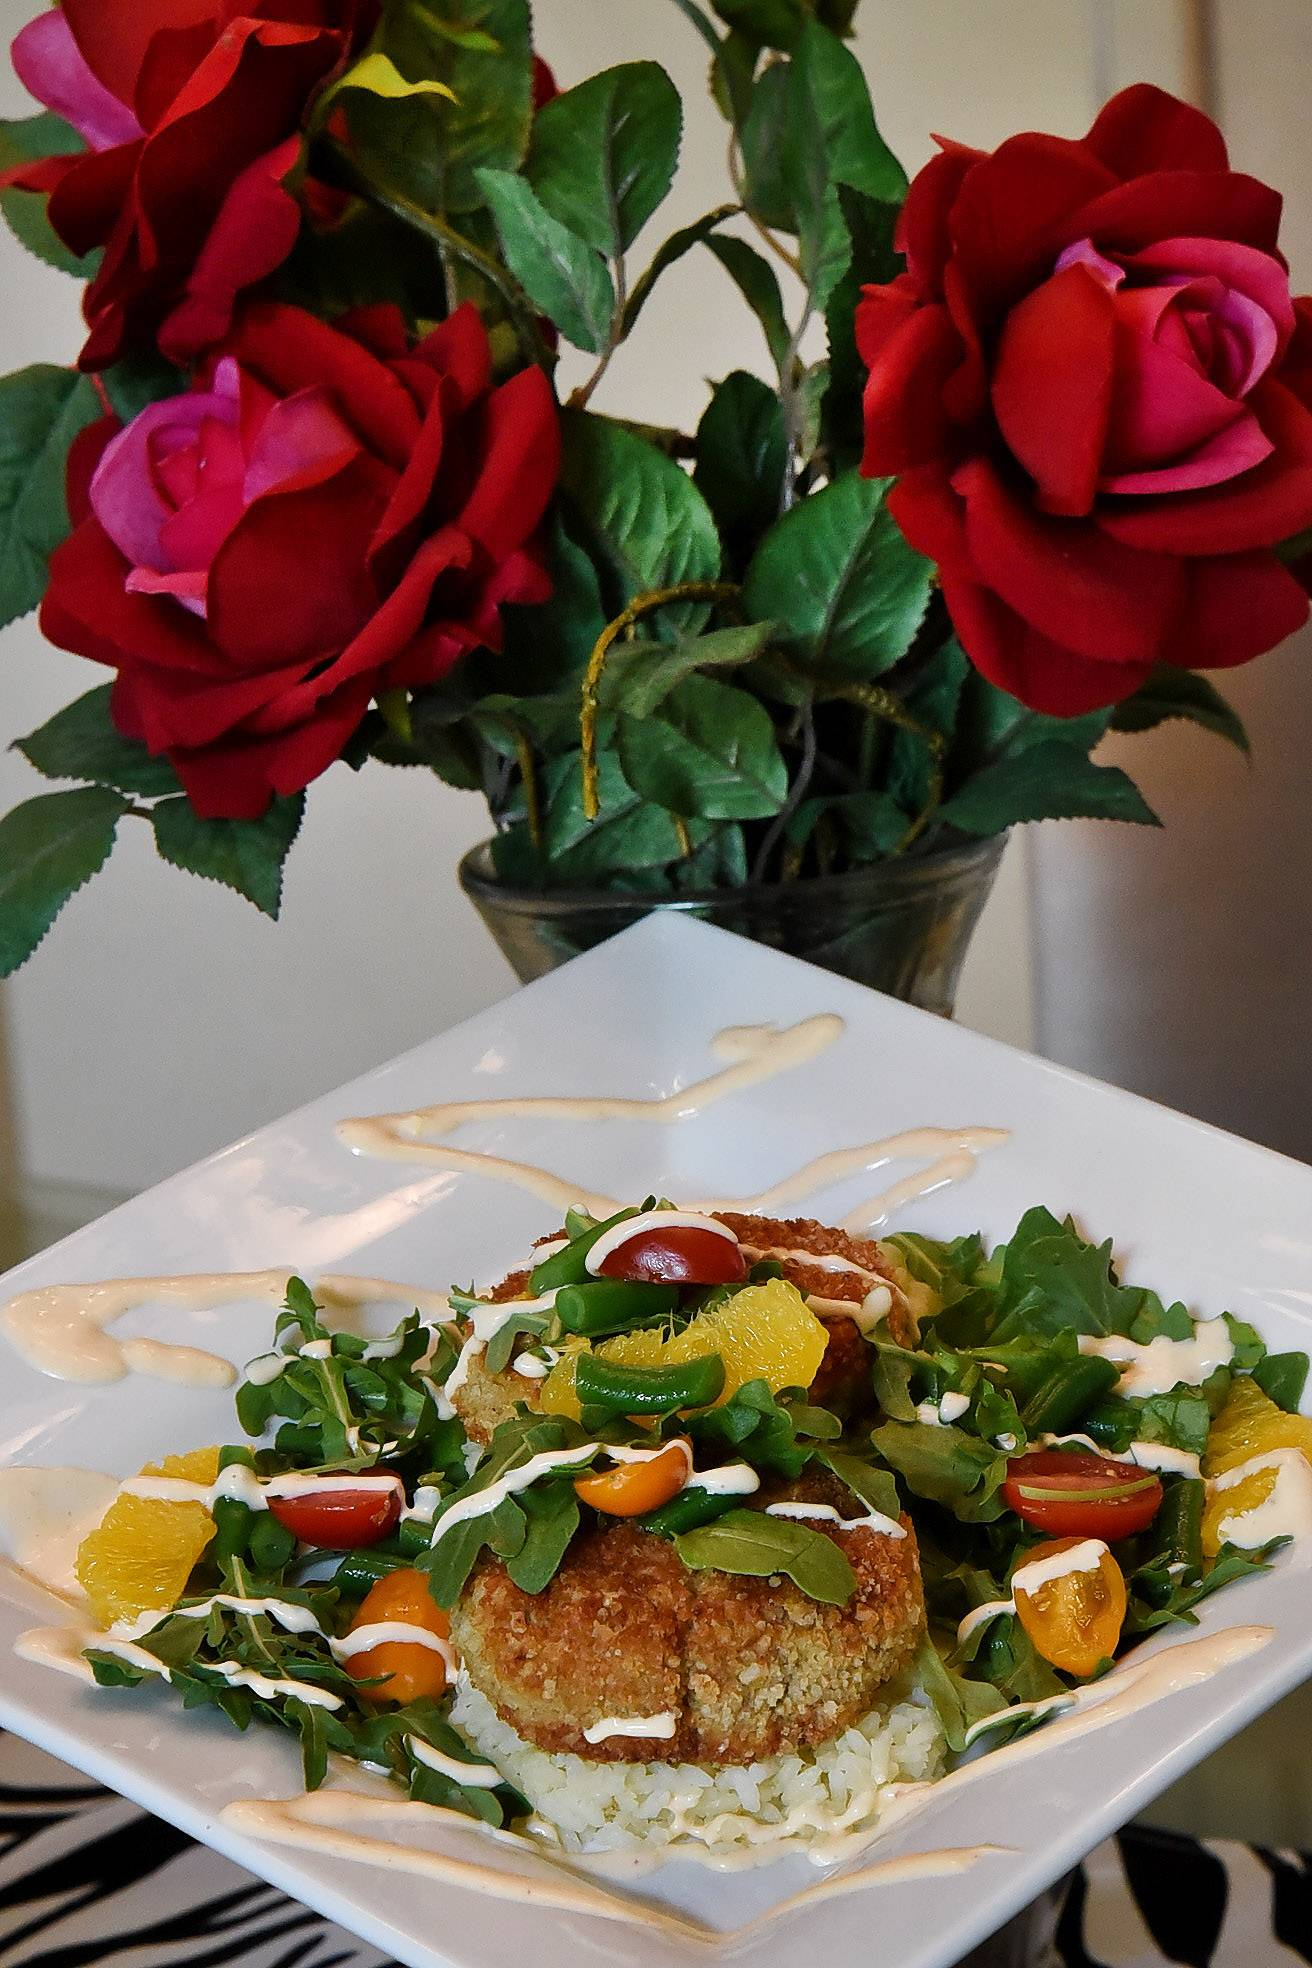 Cook of the Week Challenge contestant Elizabeth Schuttler of Inverness made Mackerel Fish Cakes with Orange Rice and Green Bean, Orange and Arugula Salad Topped with a Citrus Aioli.